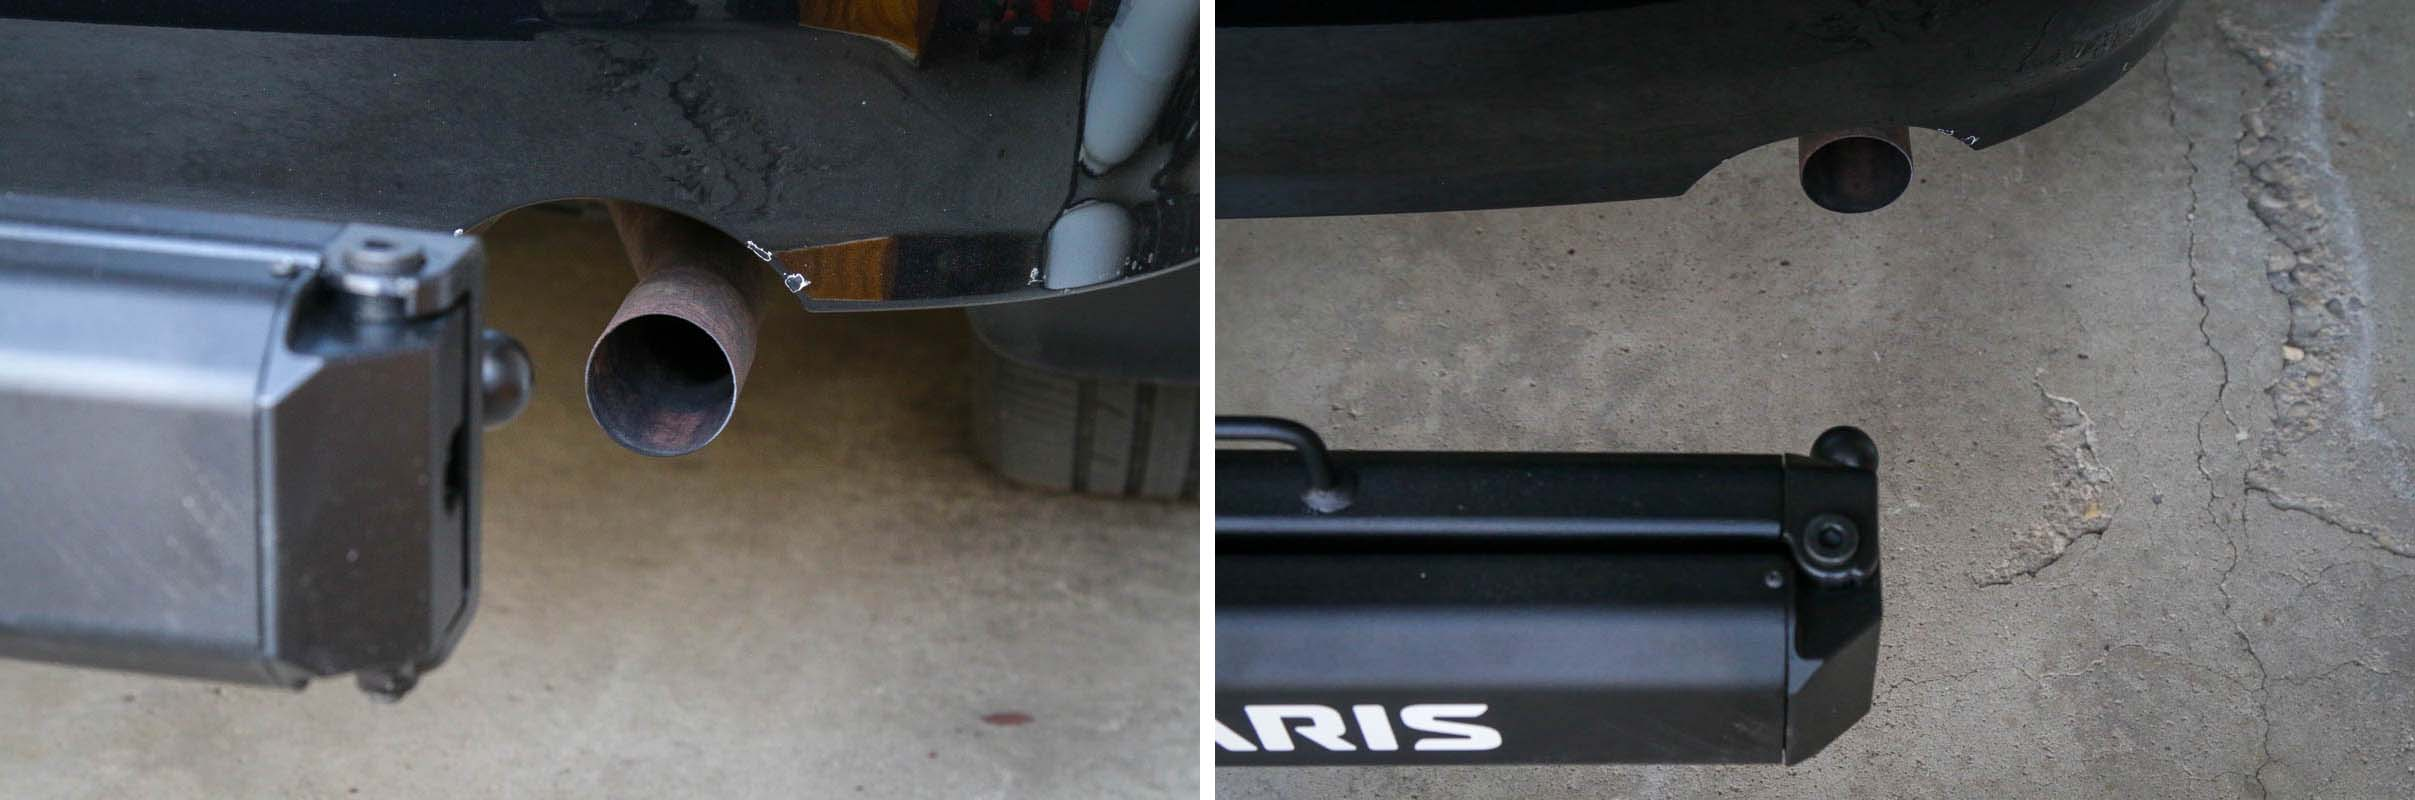 Saris Swing Away Hitch adapter exhaust clearance